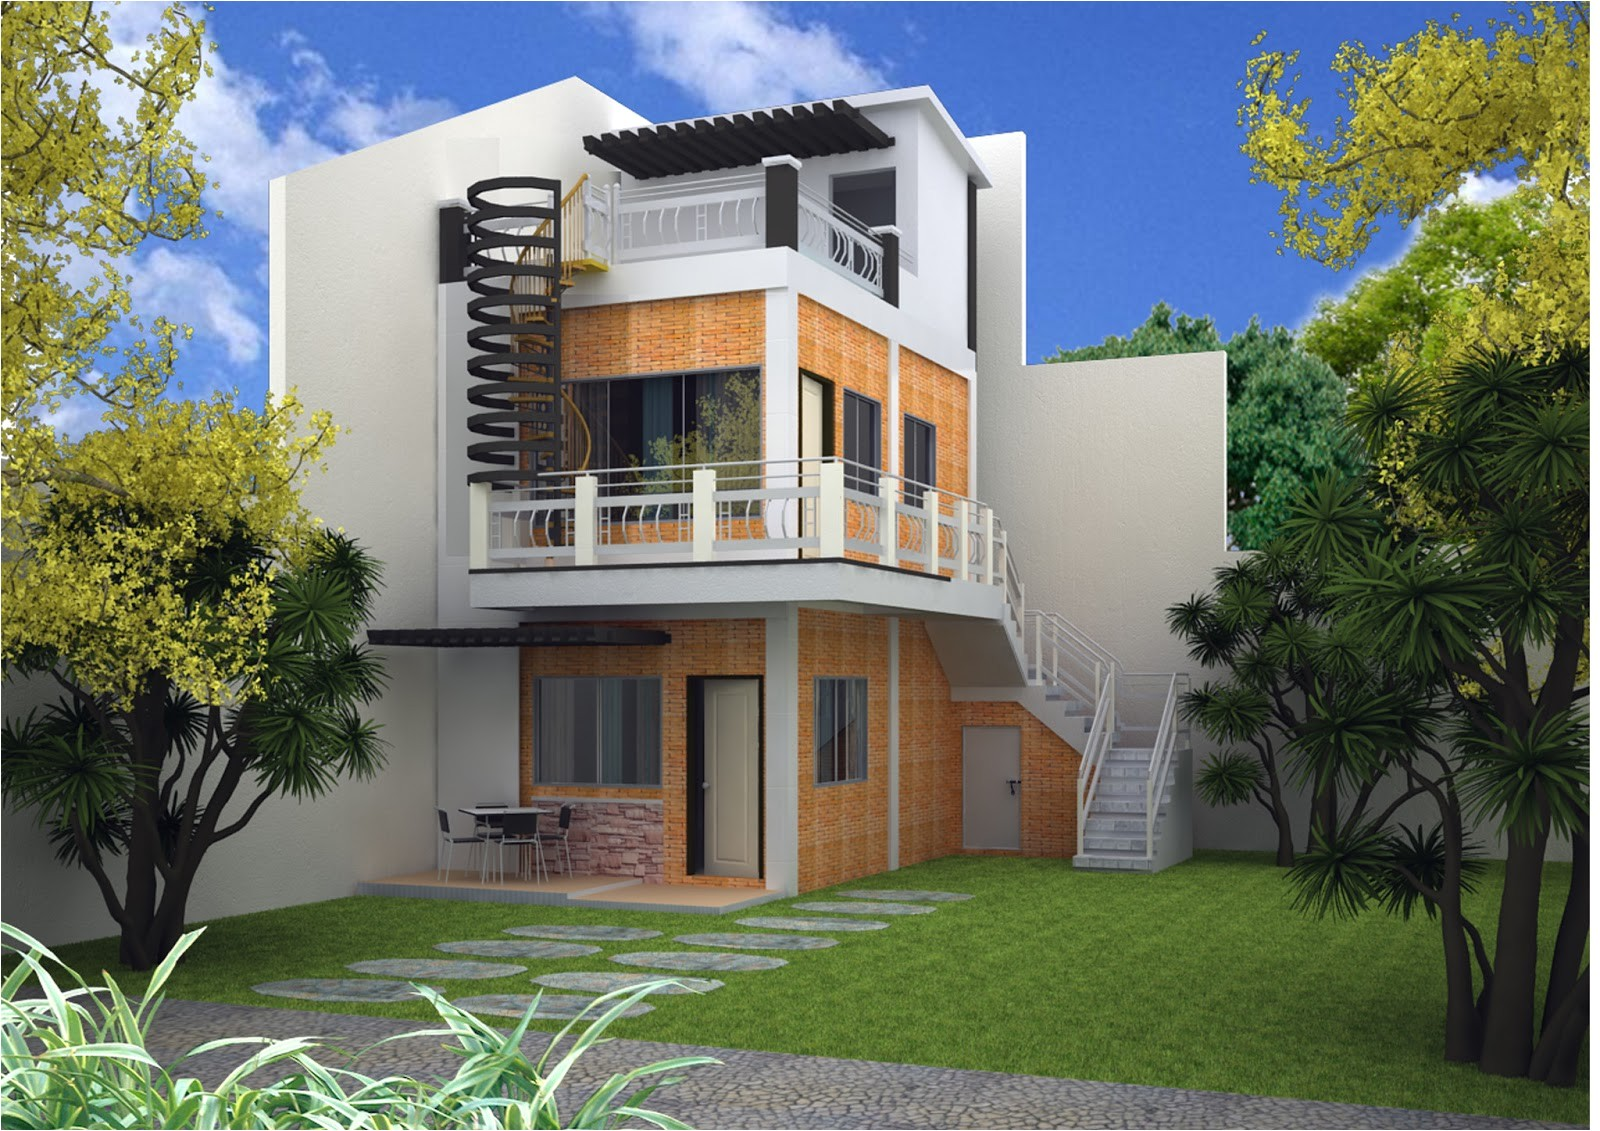 3 story house plans roof deck